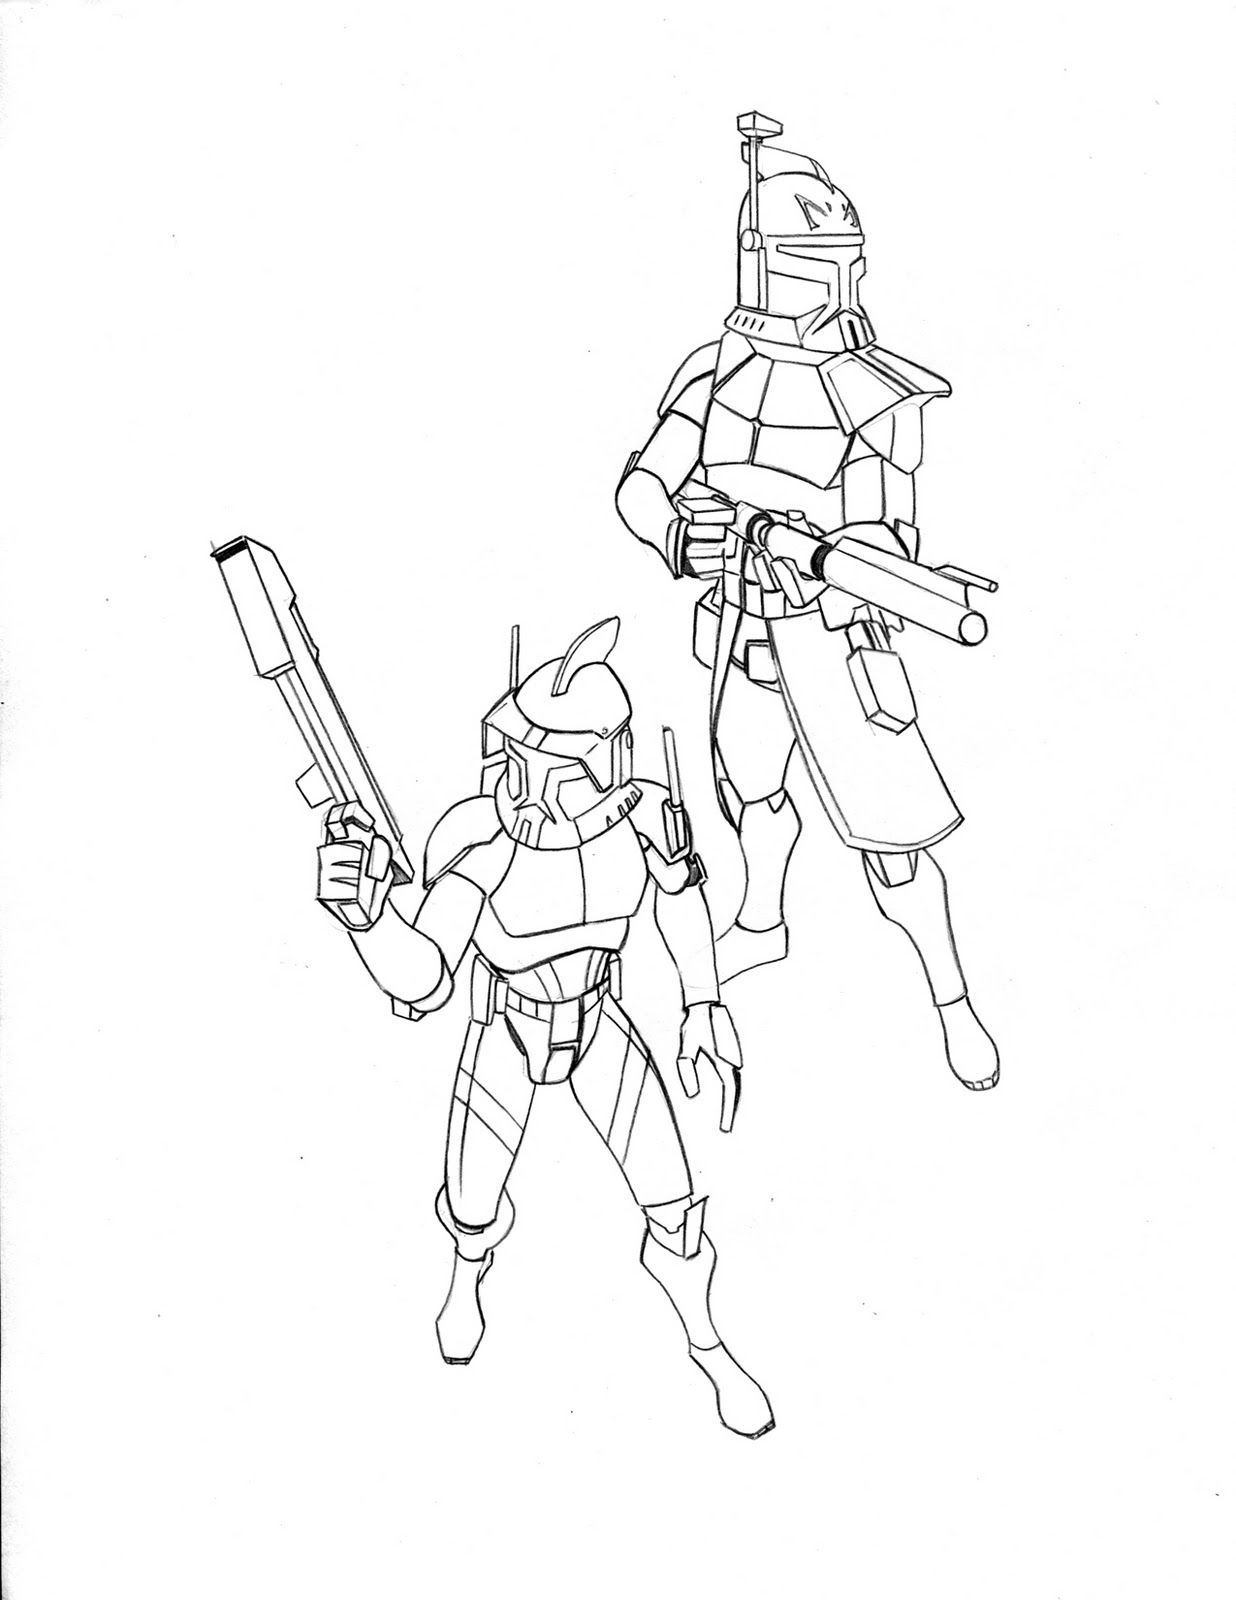 Captain Rex And Commander Cody Coloring Pages - Coloring Pages For ...